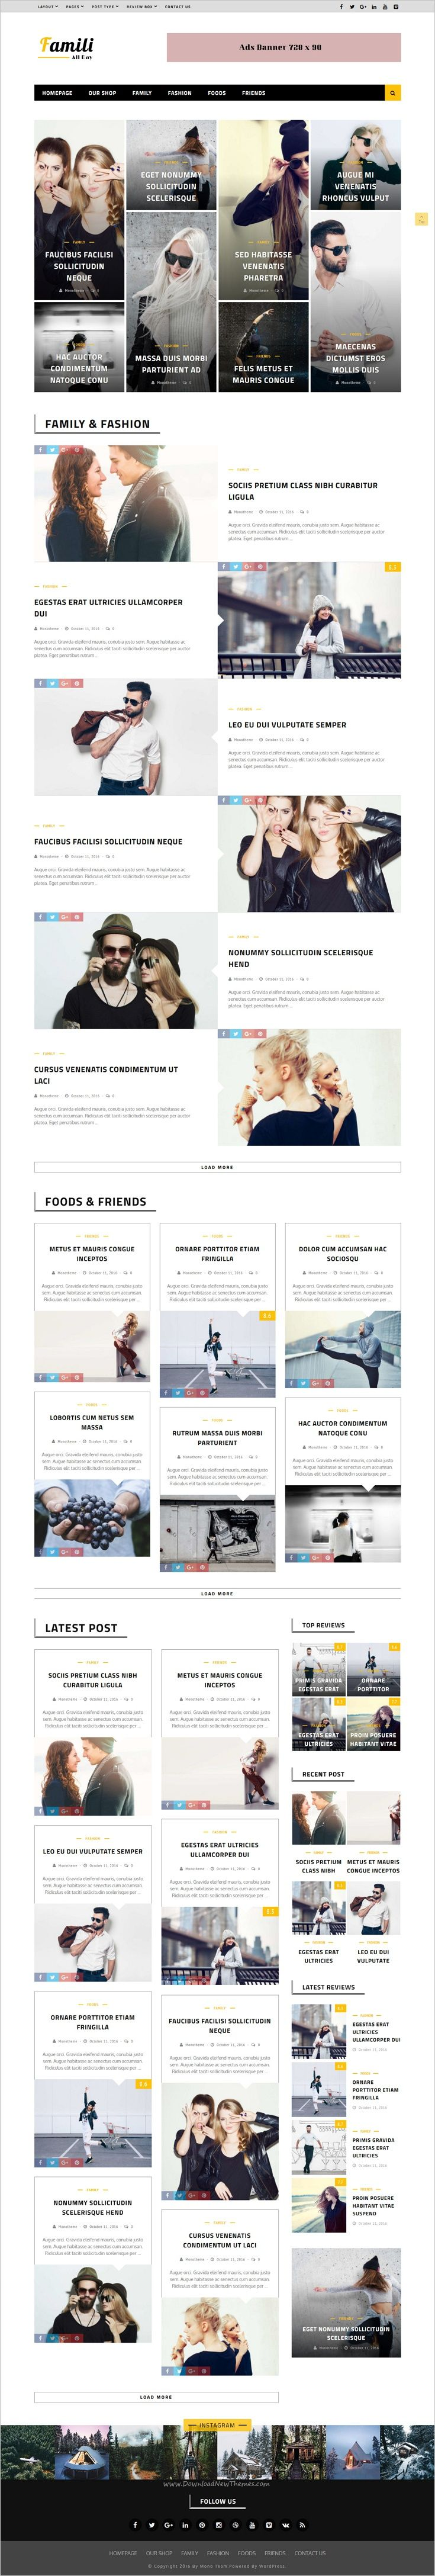 Famili is a premium flat, clean, super flexible and fully responsive #WordPress #magazine theme, best suited for magazine, #news or #blog websites download now➩ https://themeforest.net/item/famili-wordpress-blog-and-magazine-theme/18860430?ref=Datasata